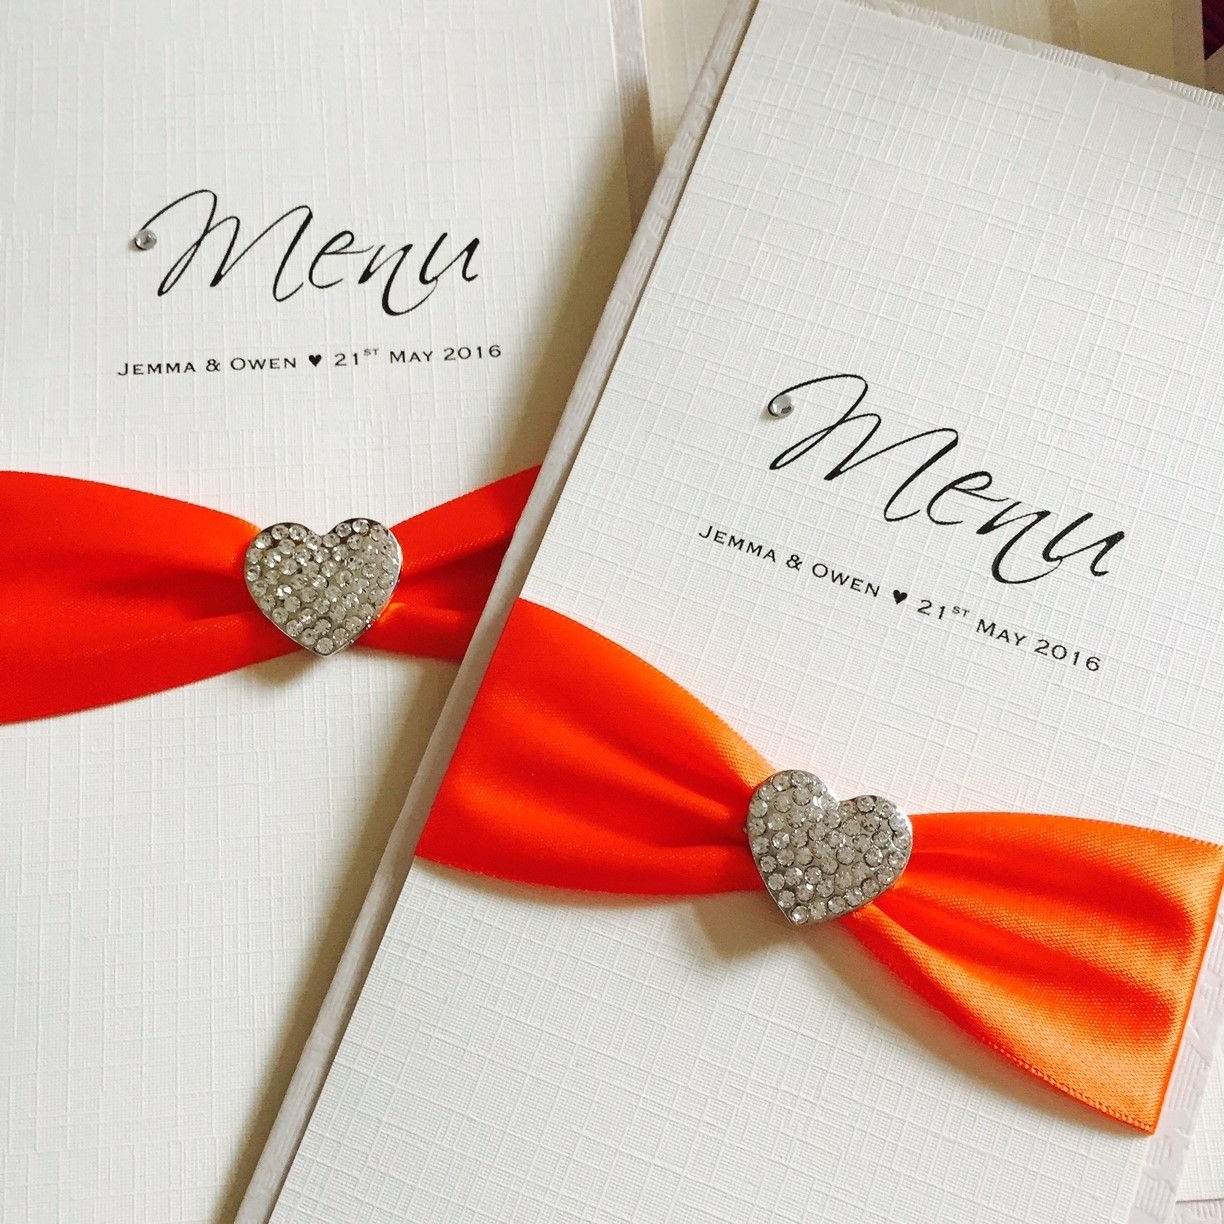 Personalised wedding breakfast menus